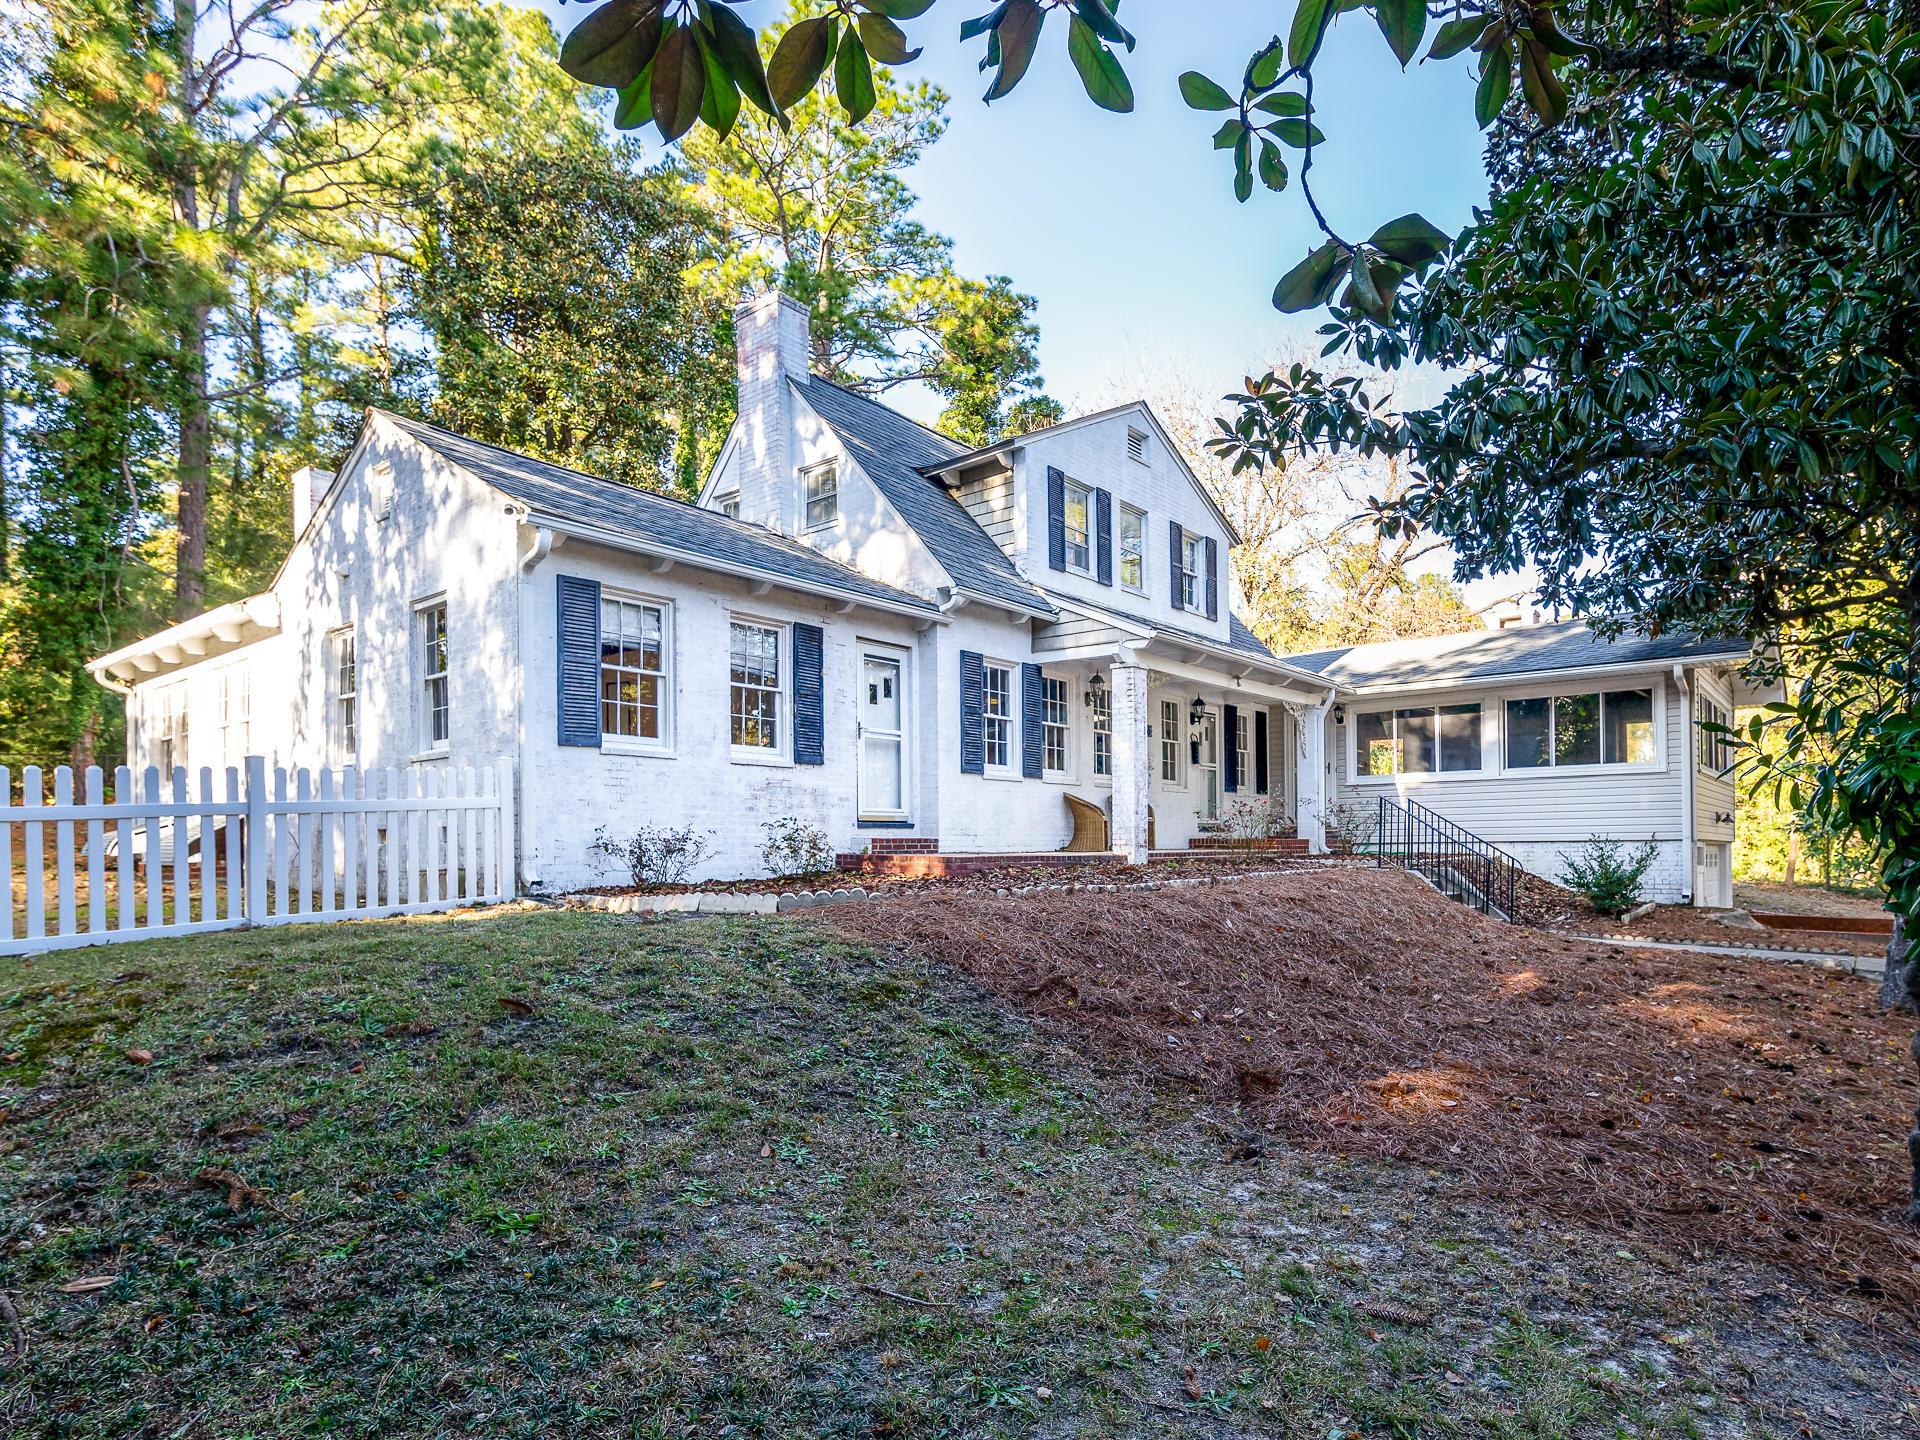 206 S Pinehurst Street, Aberdeen in Moore County, NC 28315 Home for Sale